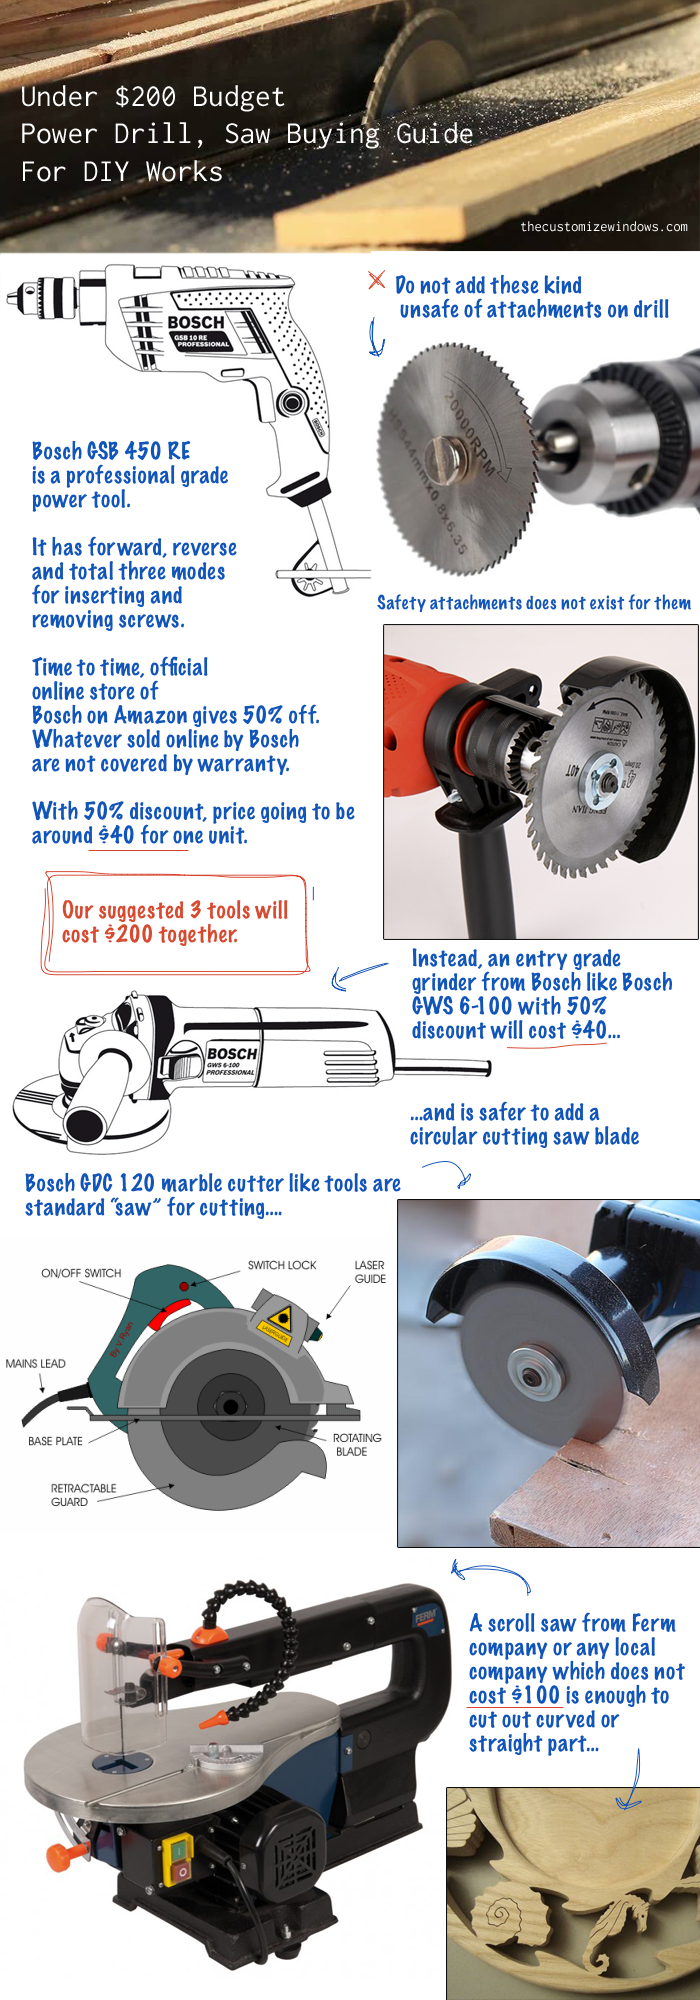 Power Drill Saw Buying Guide For DIY Works